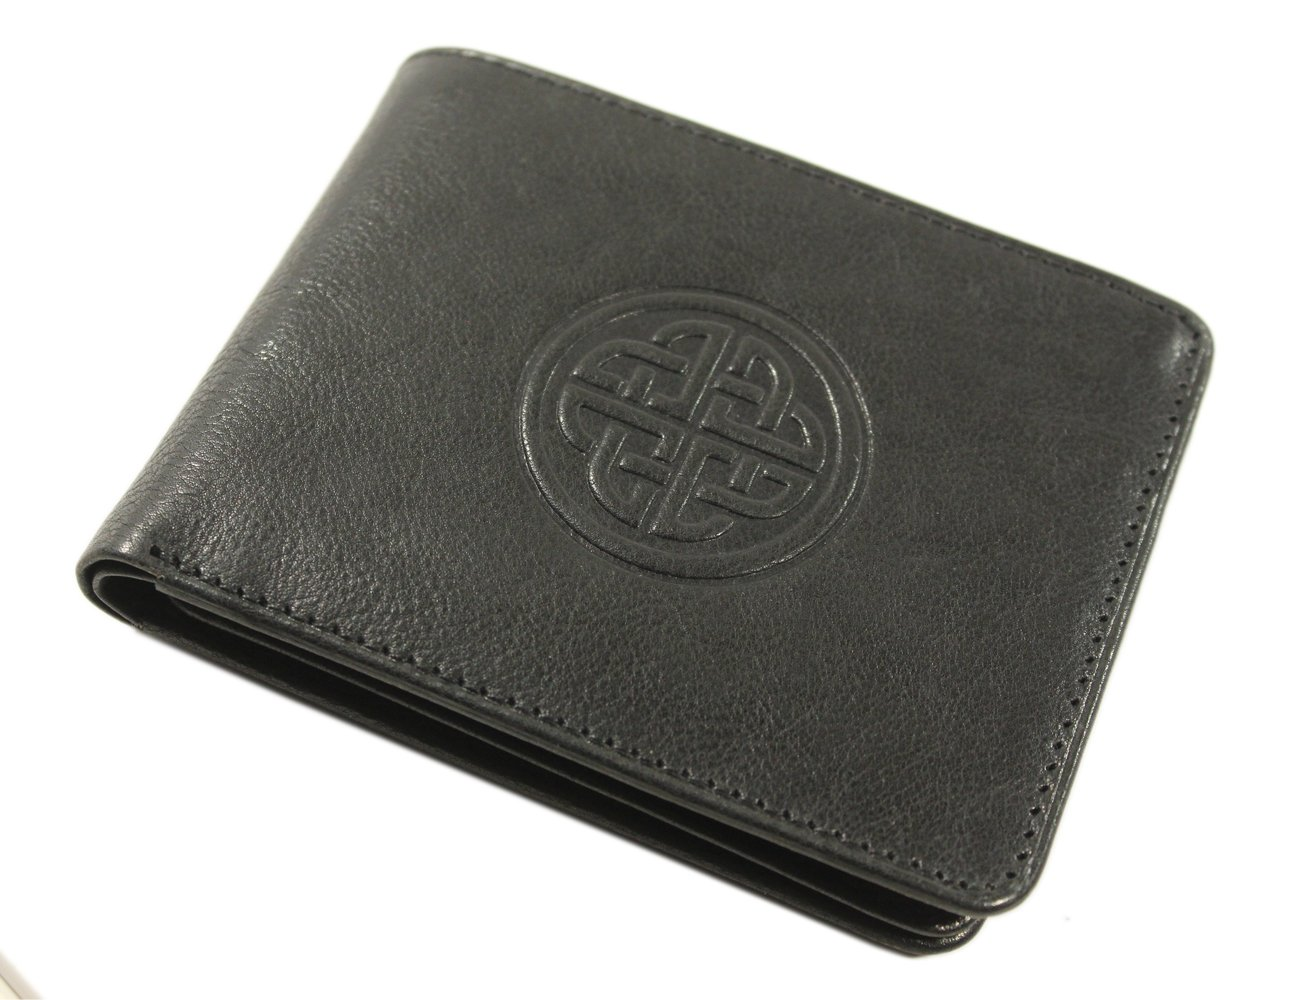 Lee River Leather Goods Irish Leather Wallet Vegetable Dyed Authentic Celtic Knot Design Black Made in Ireland